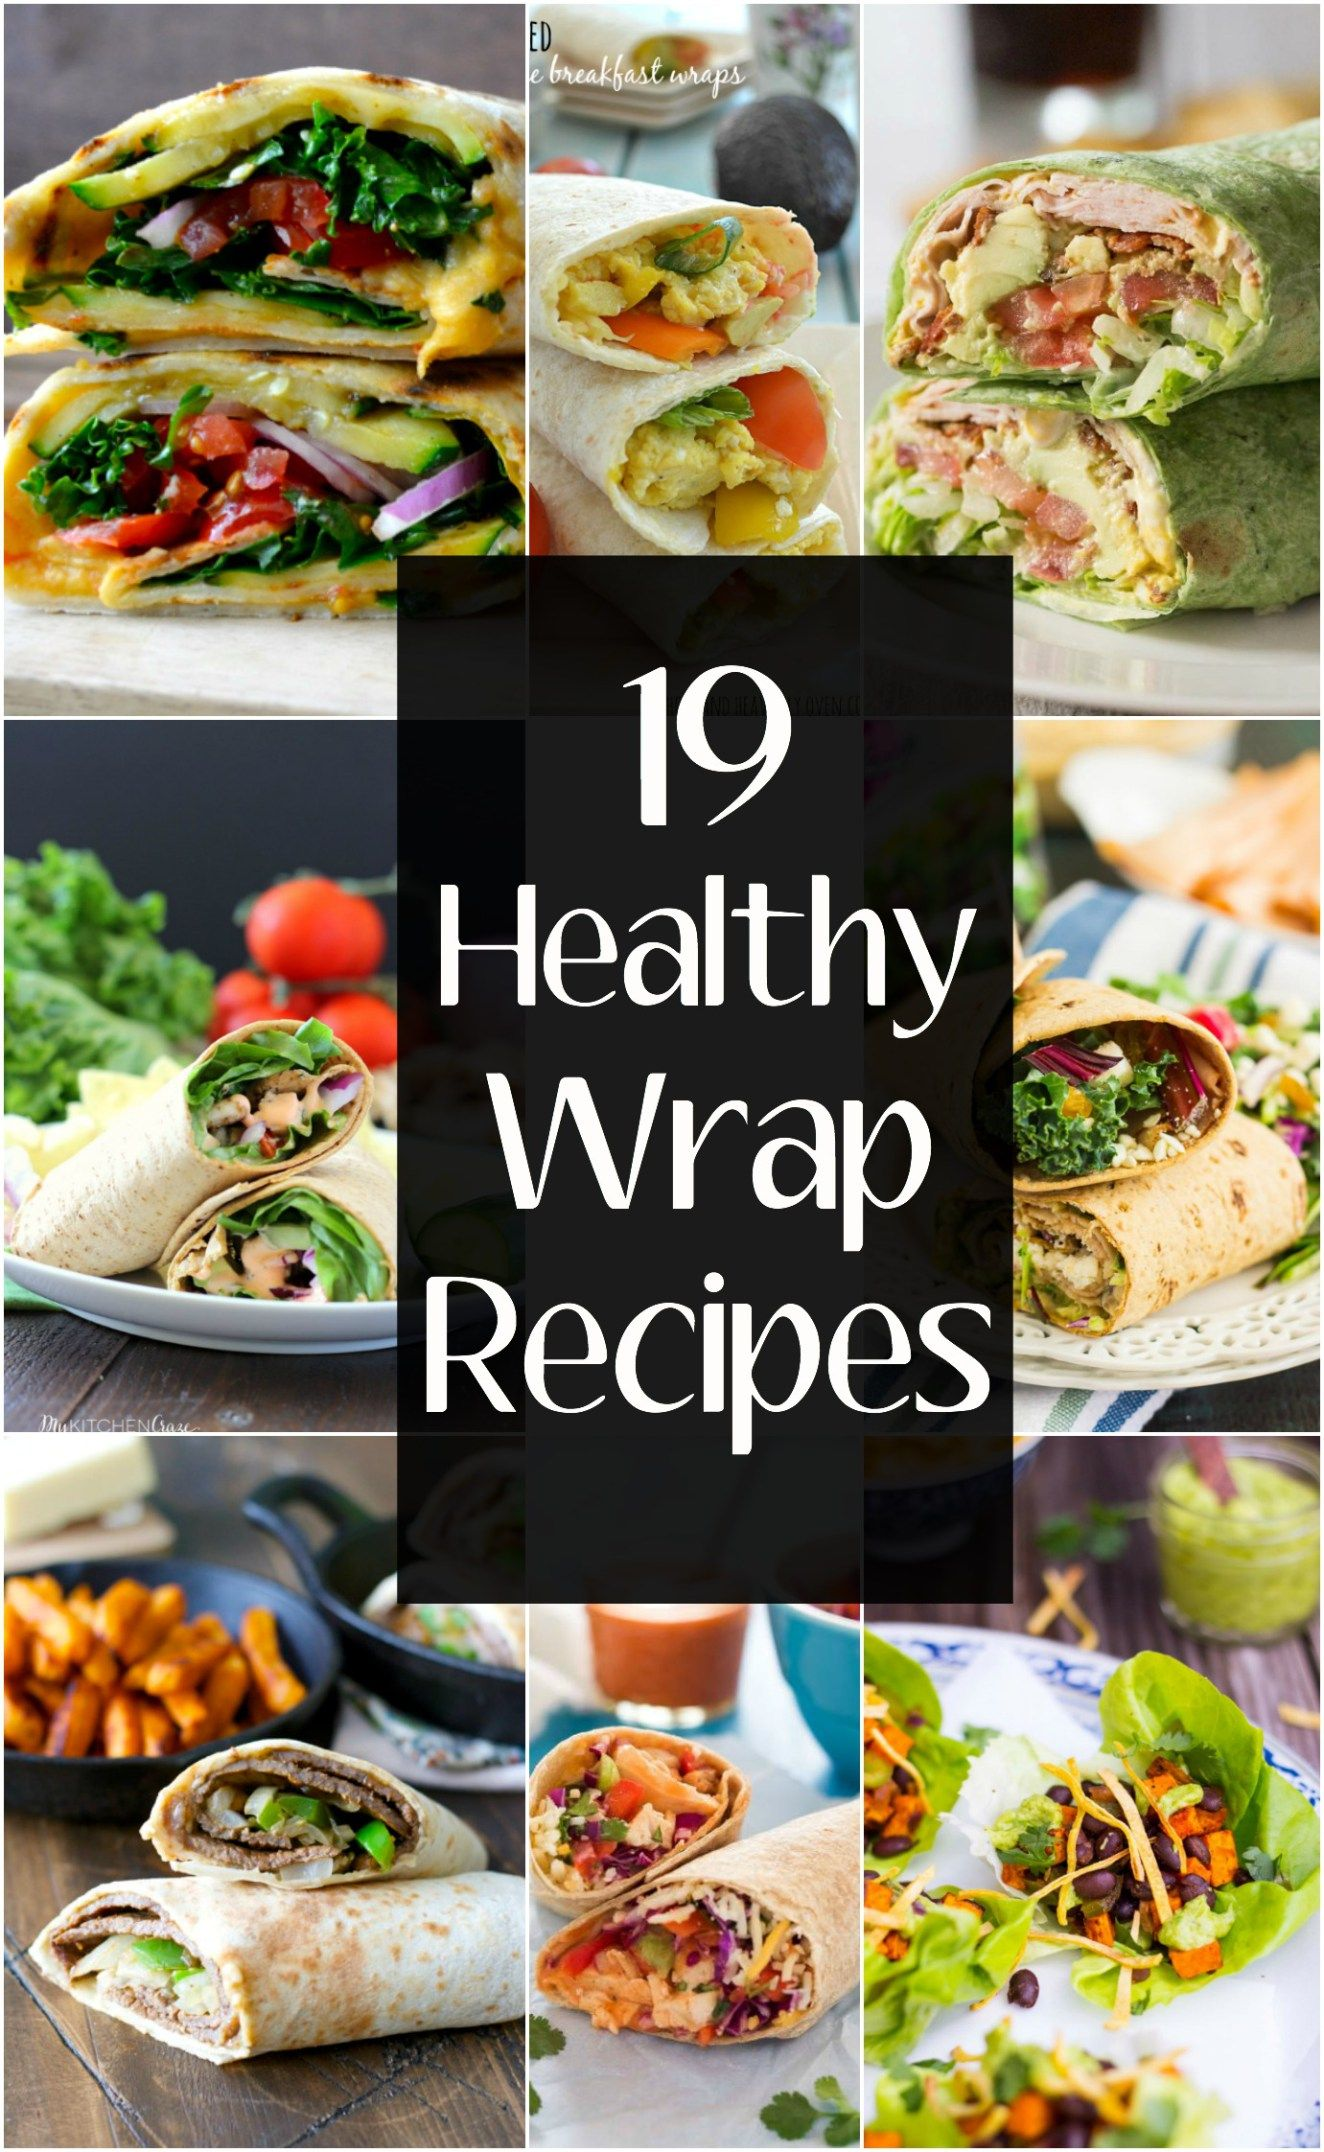 19 Healthy Wrap Recipes These Easy And Healthy Wraps Are Perfect